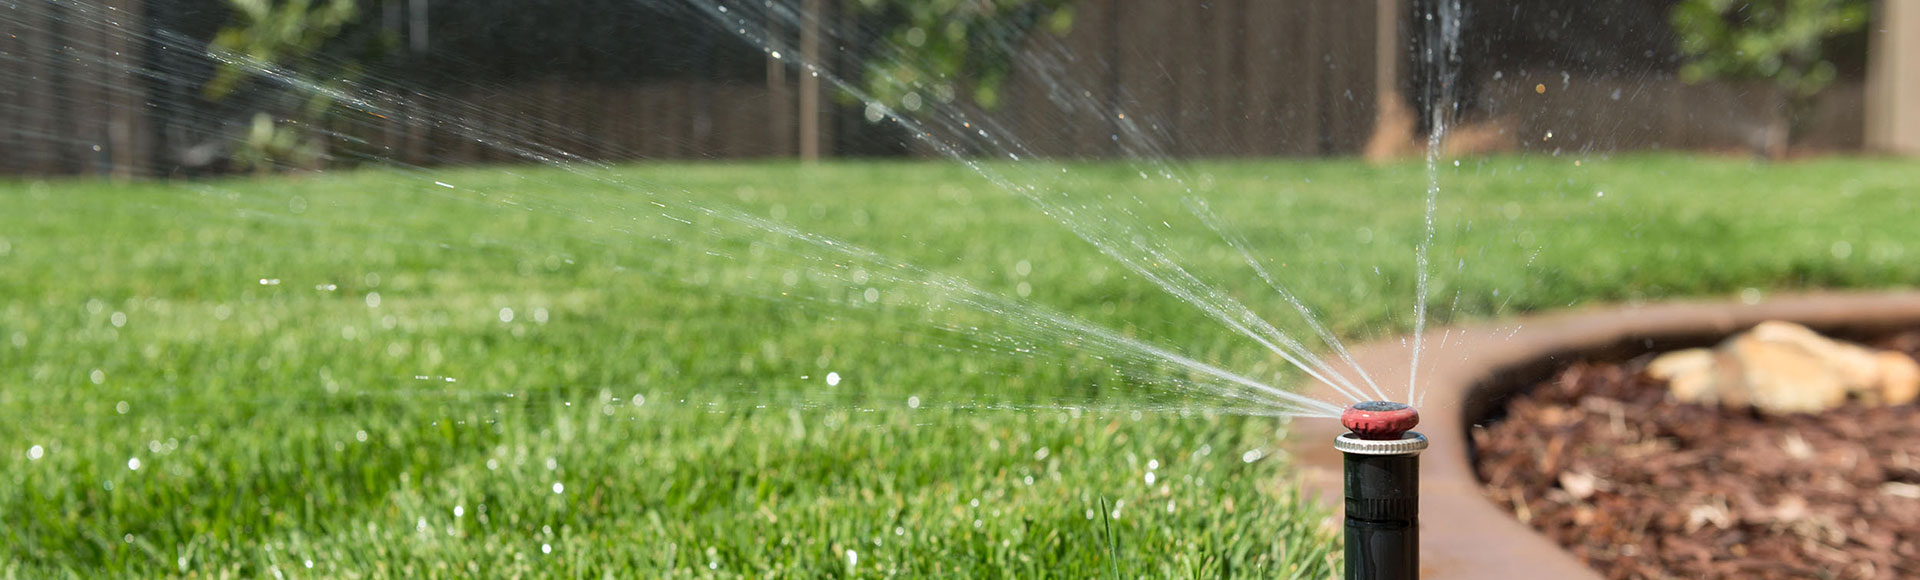 sprinkler-system-installation-wichita